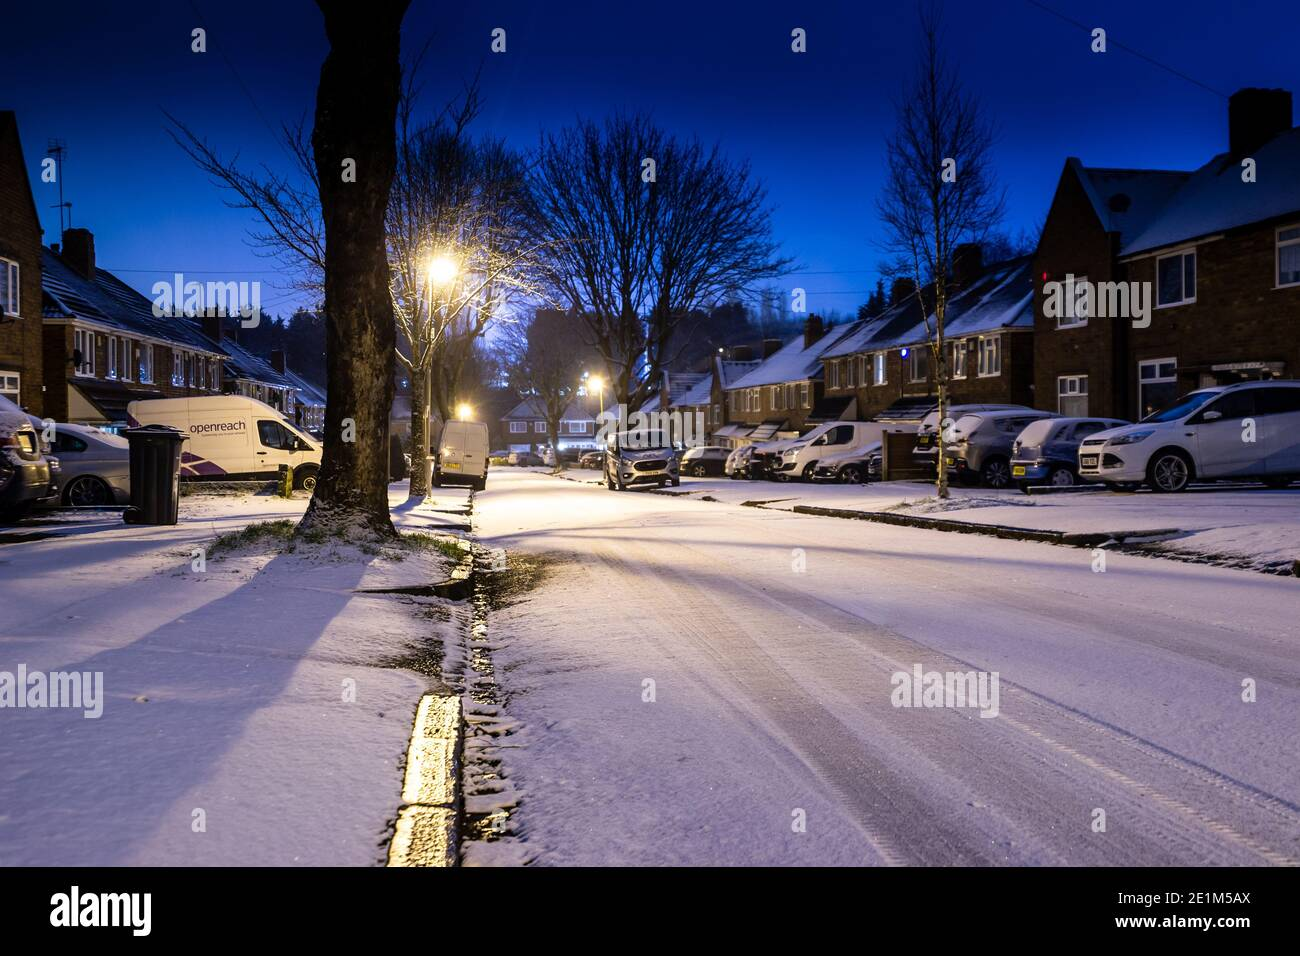 birmingham-west-midlands-uk-8th-january-2021-bands-of-snow-scattered-across-the-uk-overnight-and-through-friday-morning-leaving-roads-white-and-shimmering-credit-ryan-underwoodalamy-live-news-2E1M5AX.jpg